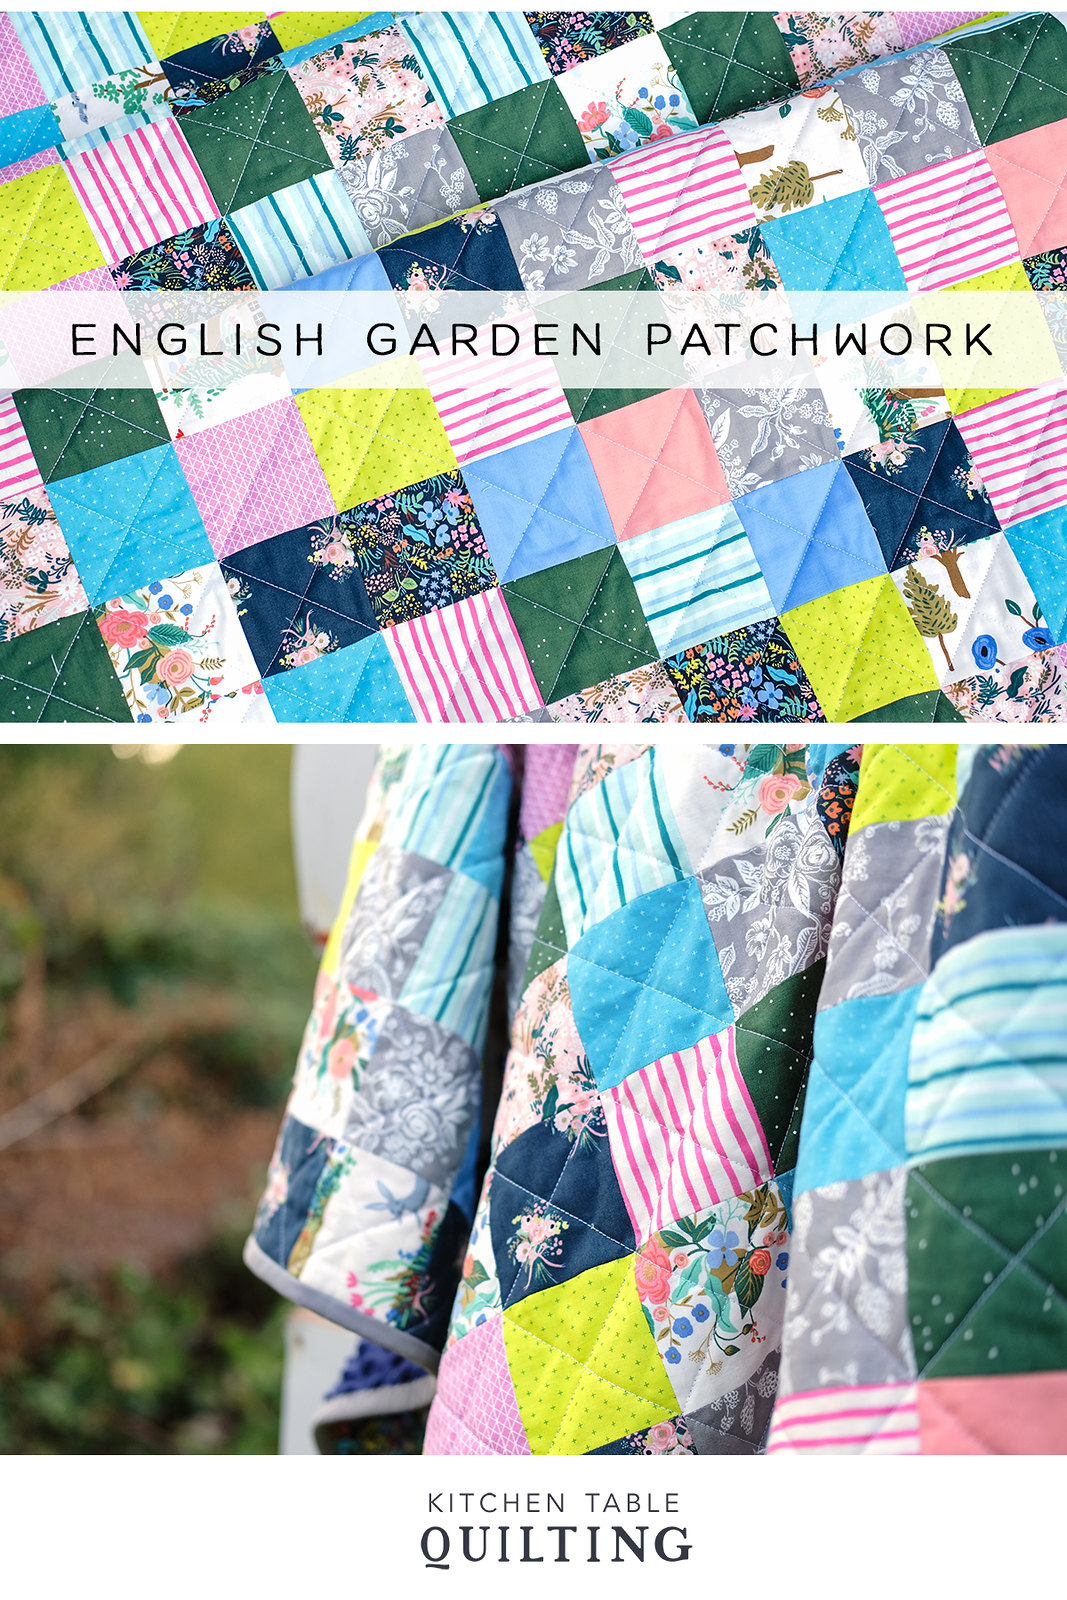 English Garden Patchwork - Kitchen Table Quilting